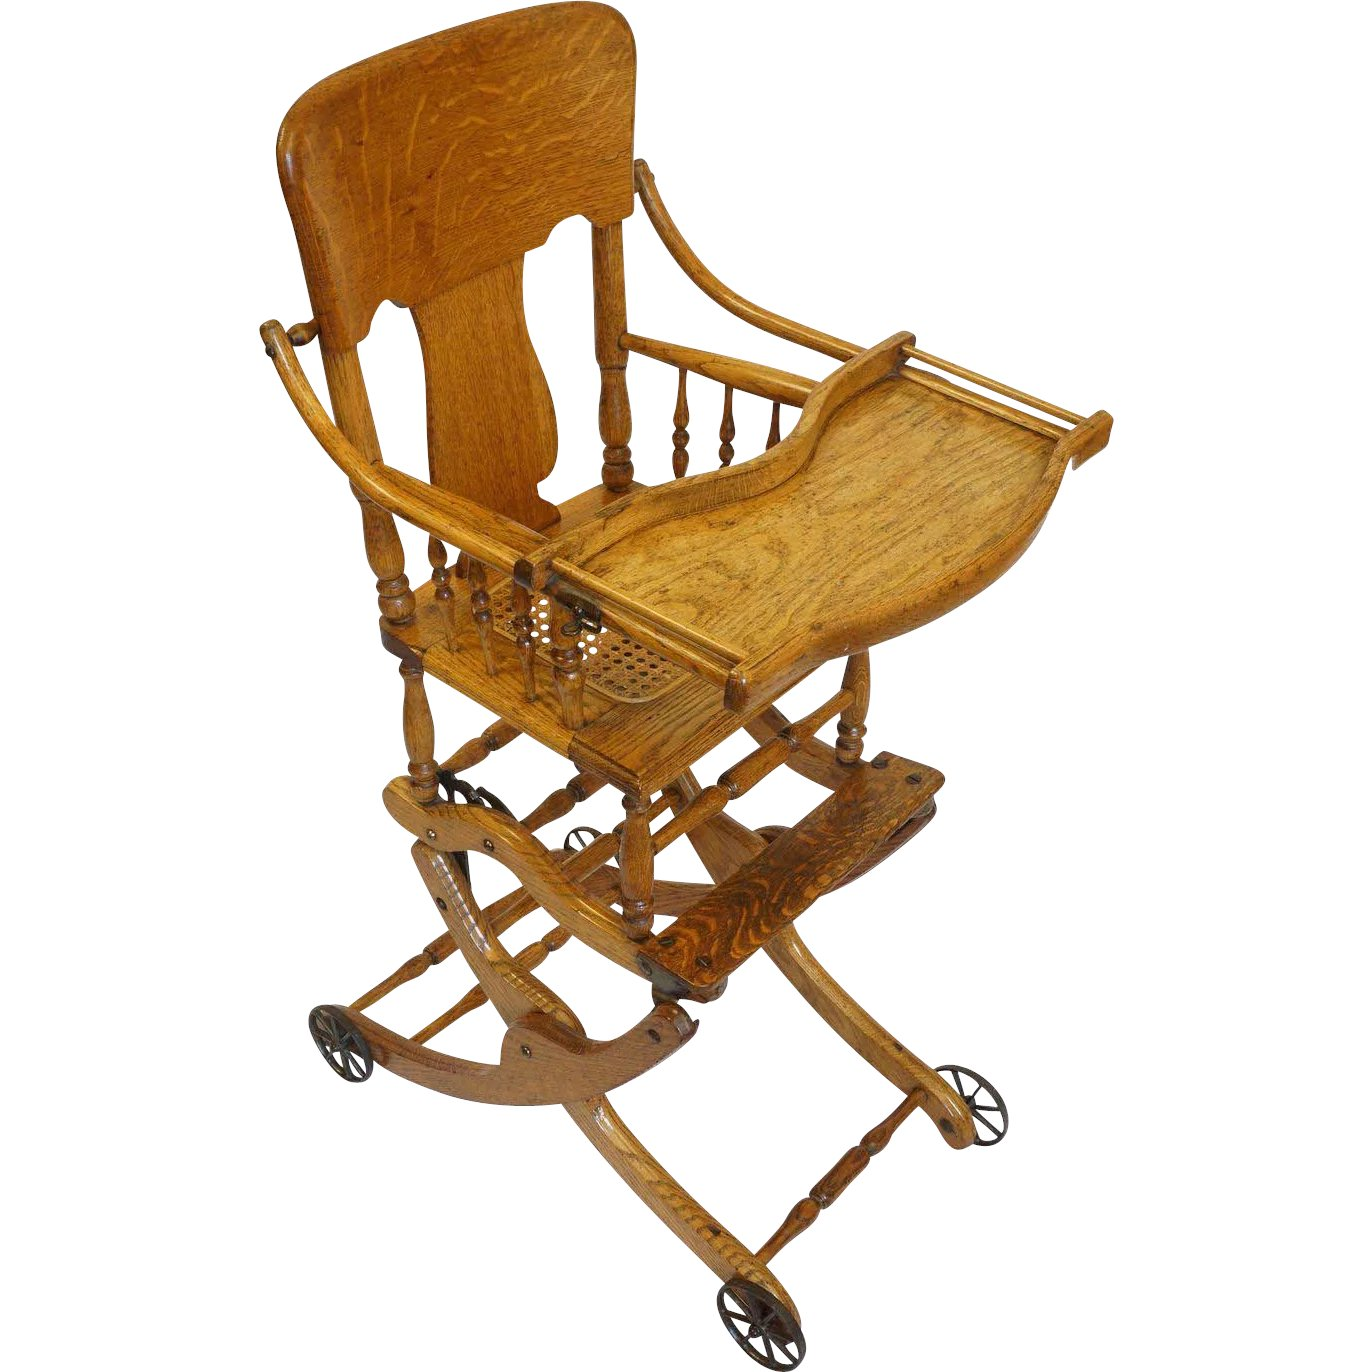 Antique Oak Convertible High Chair, Stroller, Rocker with Caned Seat :  Amulet Art and Antiques   Ruby Lane - Antique Oak Convertible High Chair, Stroller, Rocker With Caned Seat